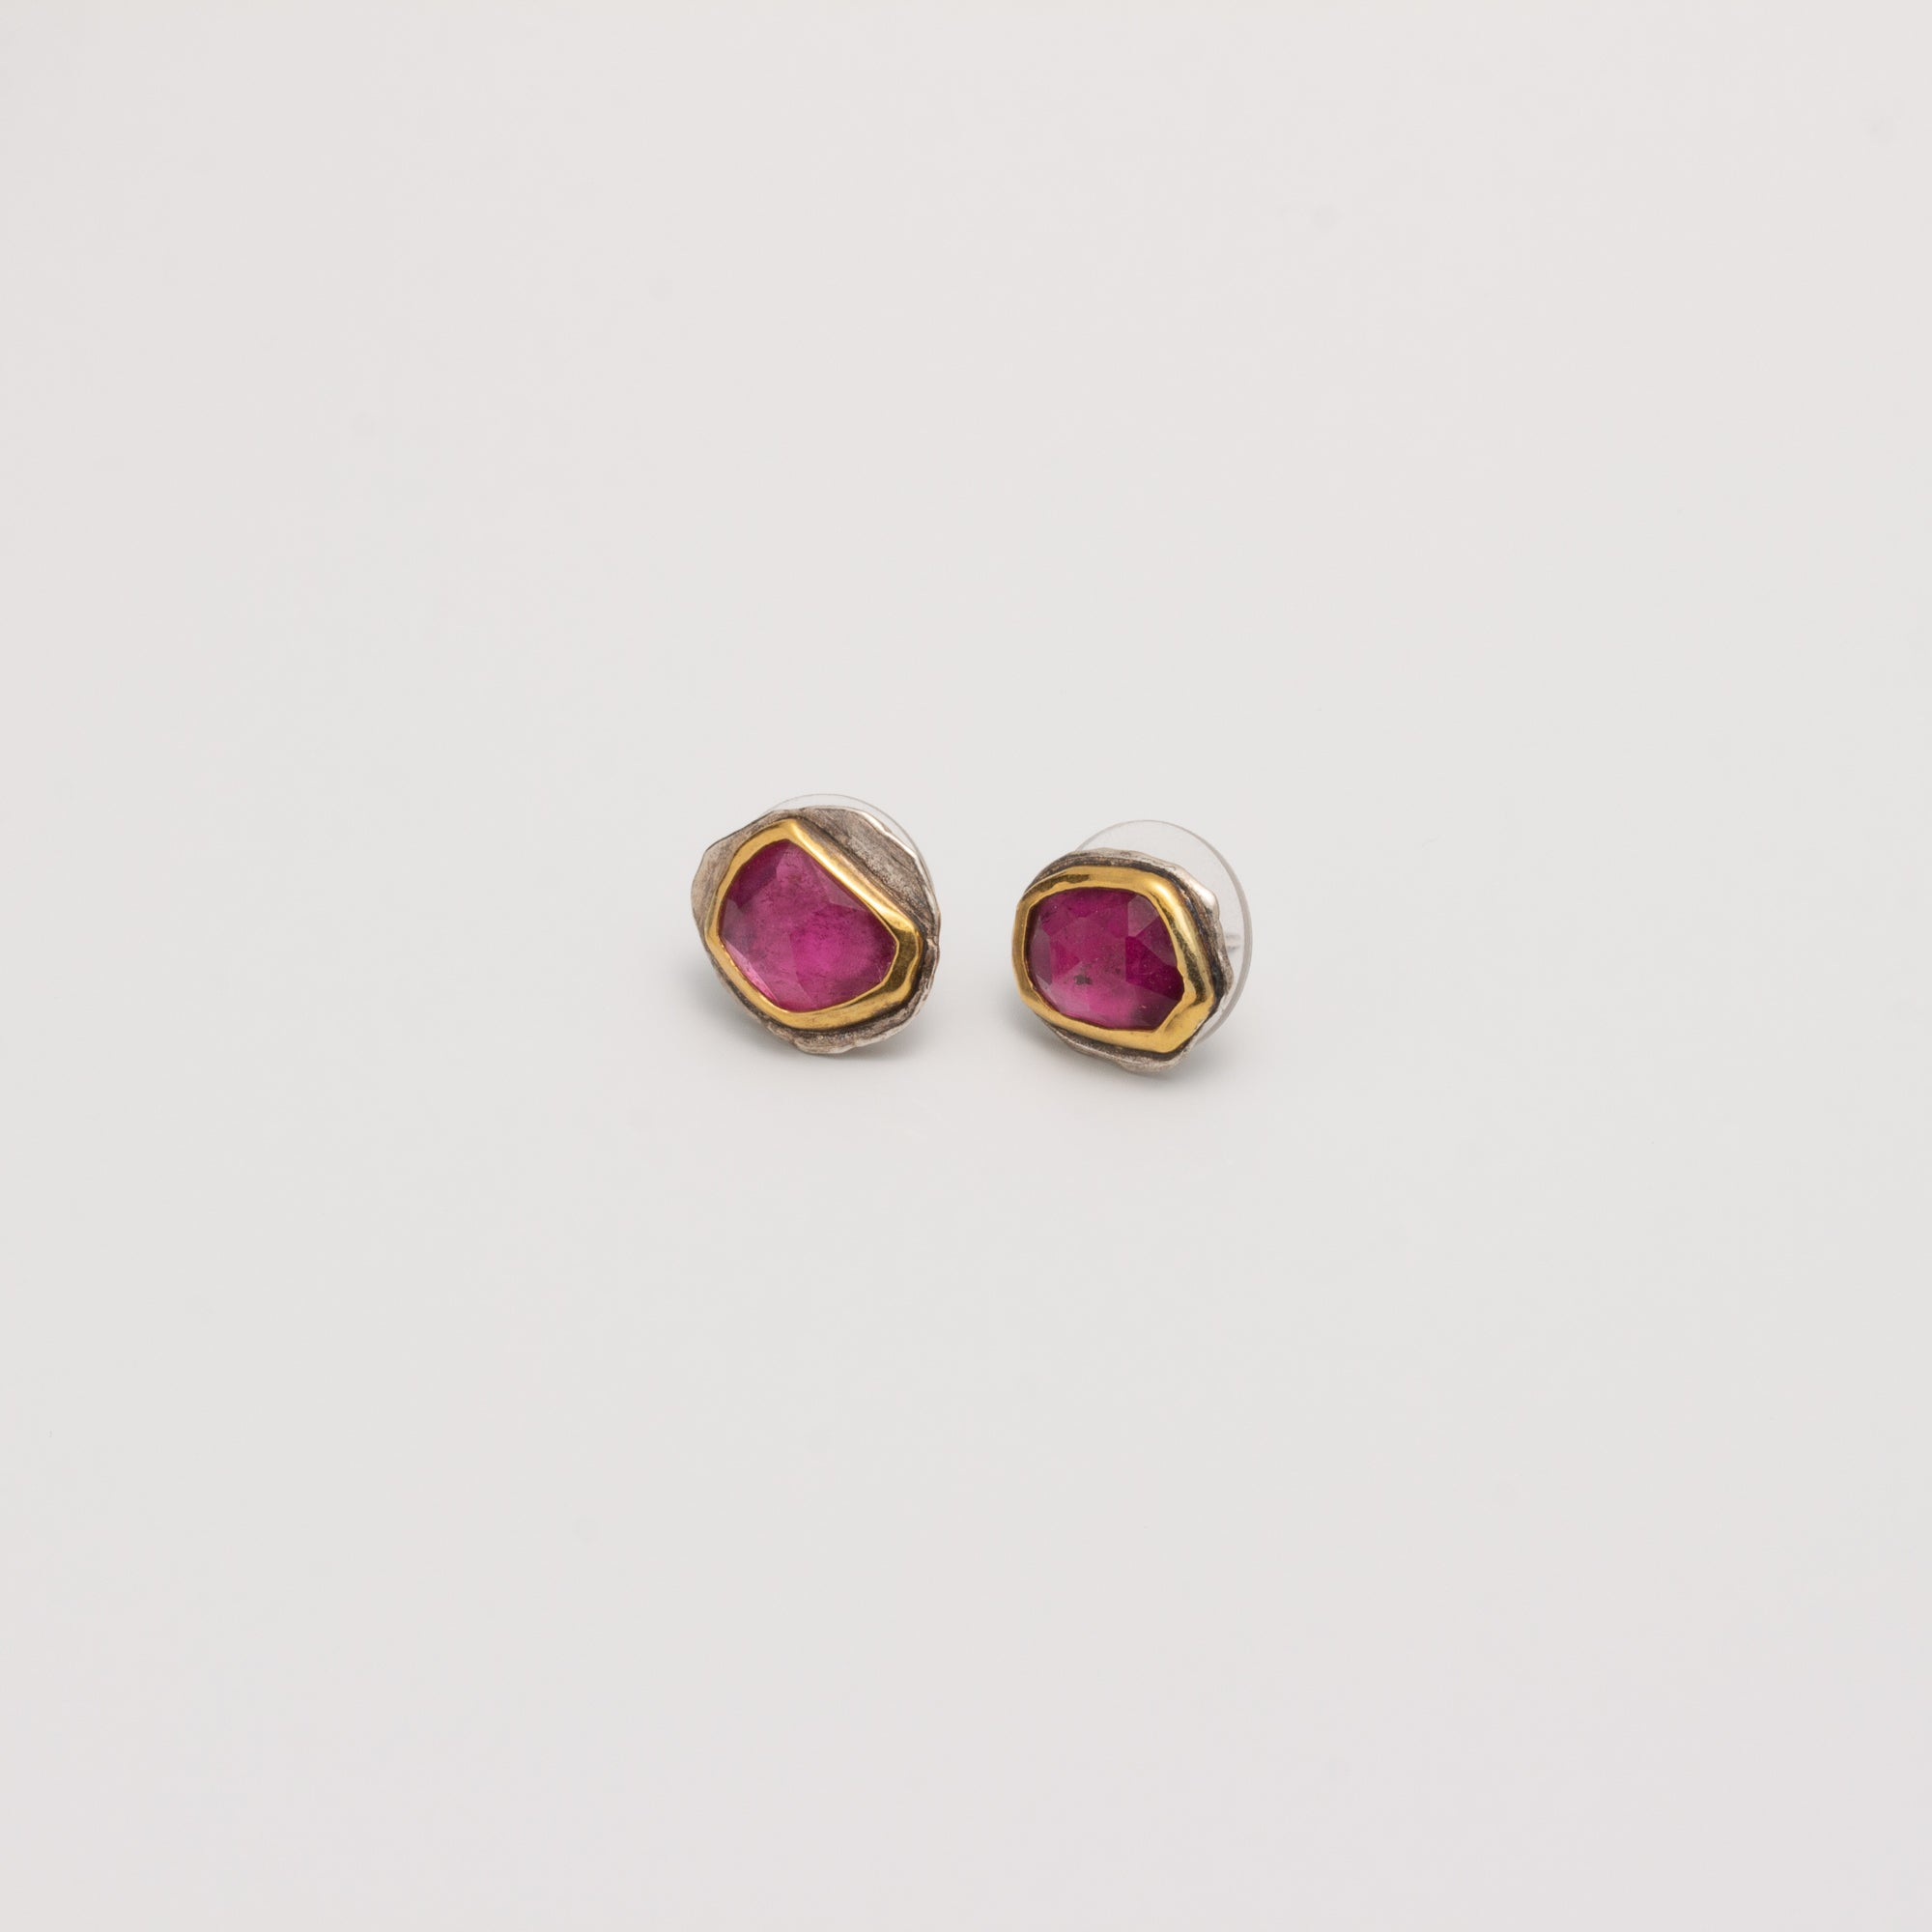 VIOLA // PINK TOURMALINE STUD EARRINGS